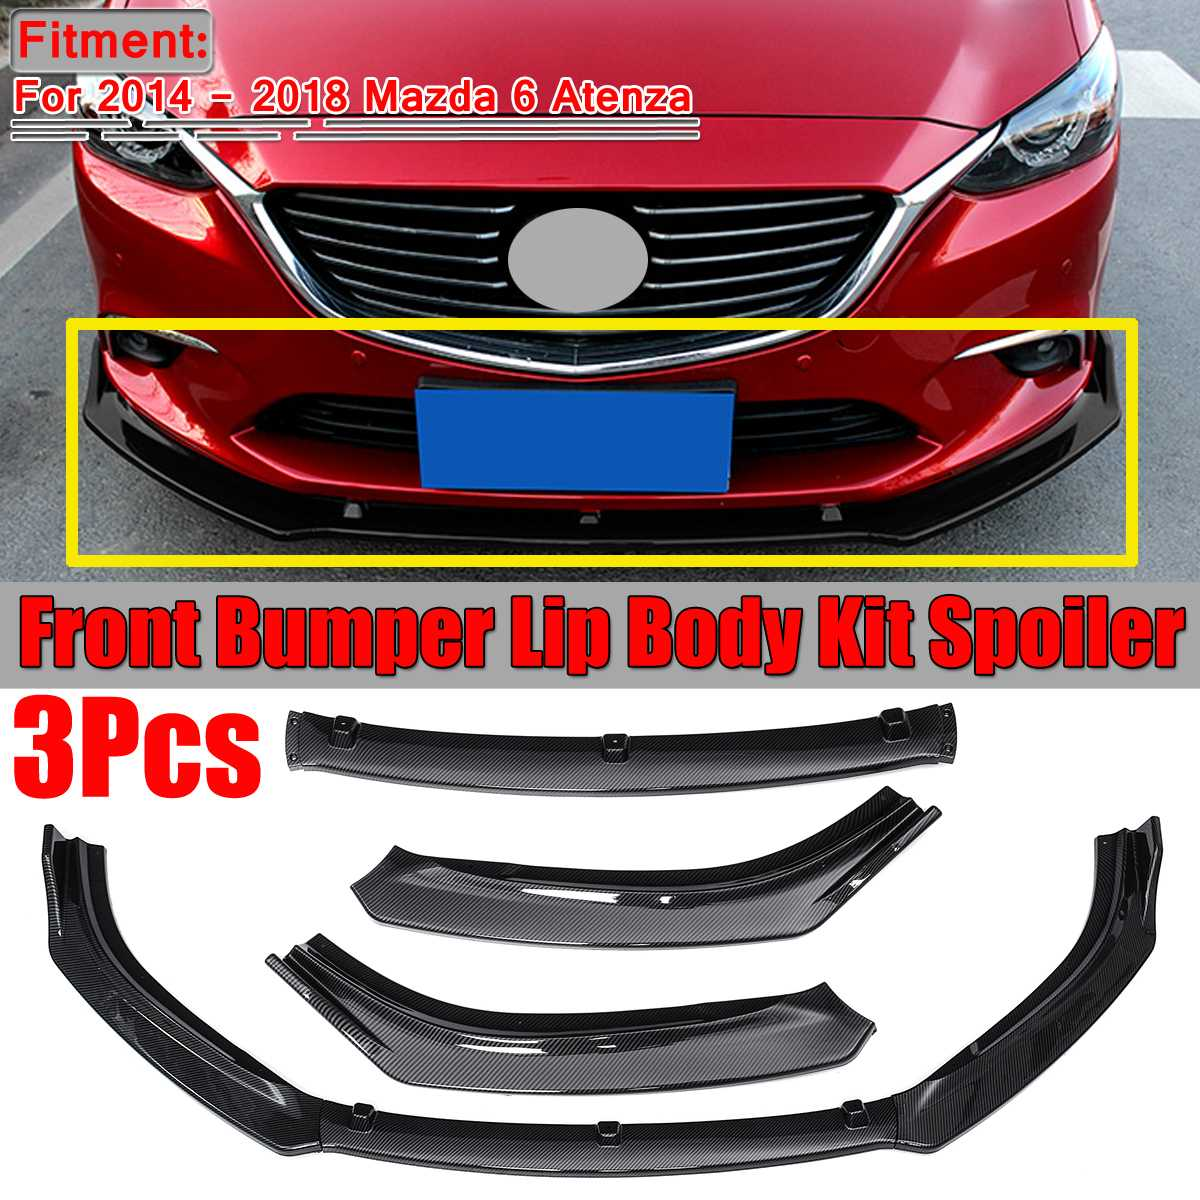 New 3pcs Car Front Bumper Splitter Lip Cover Trim For Mazda 6 Atenza 2014 2015 2016 2017 2018 Front Bumper Diffuser Spoiler Lip